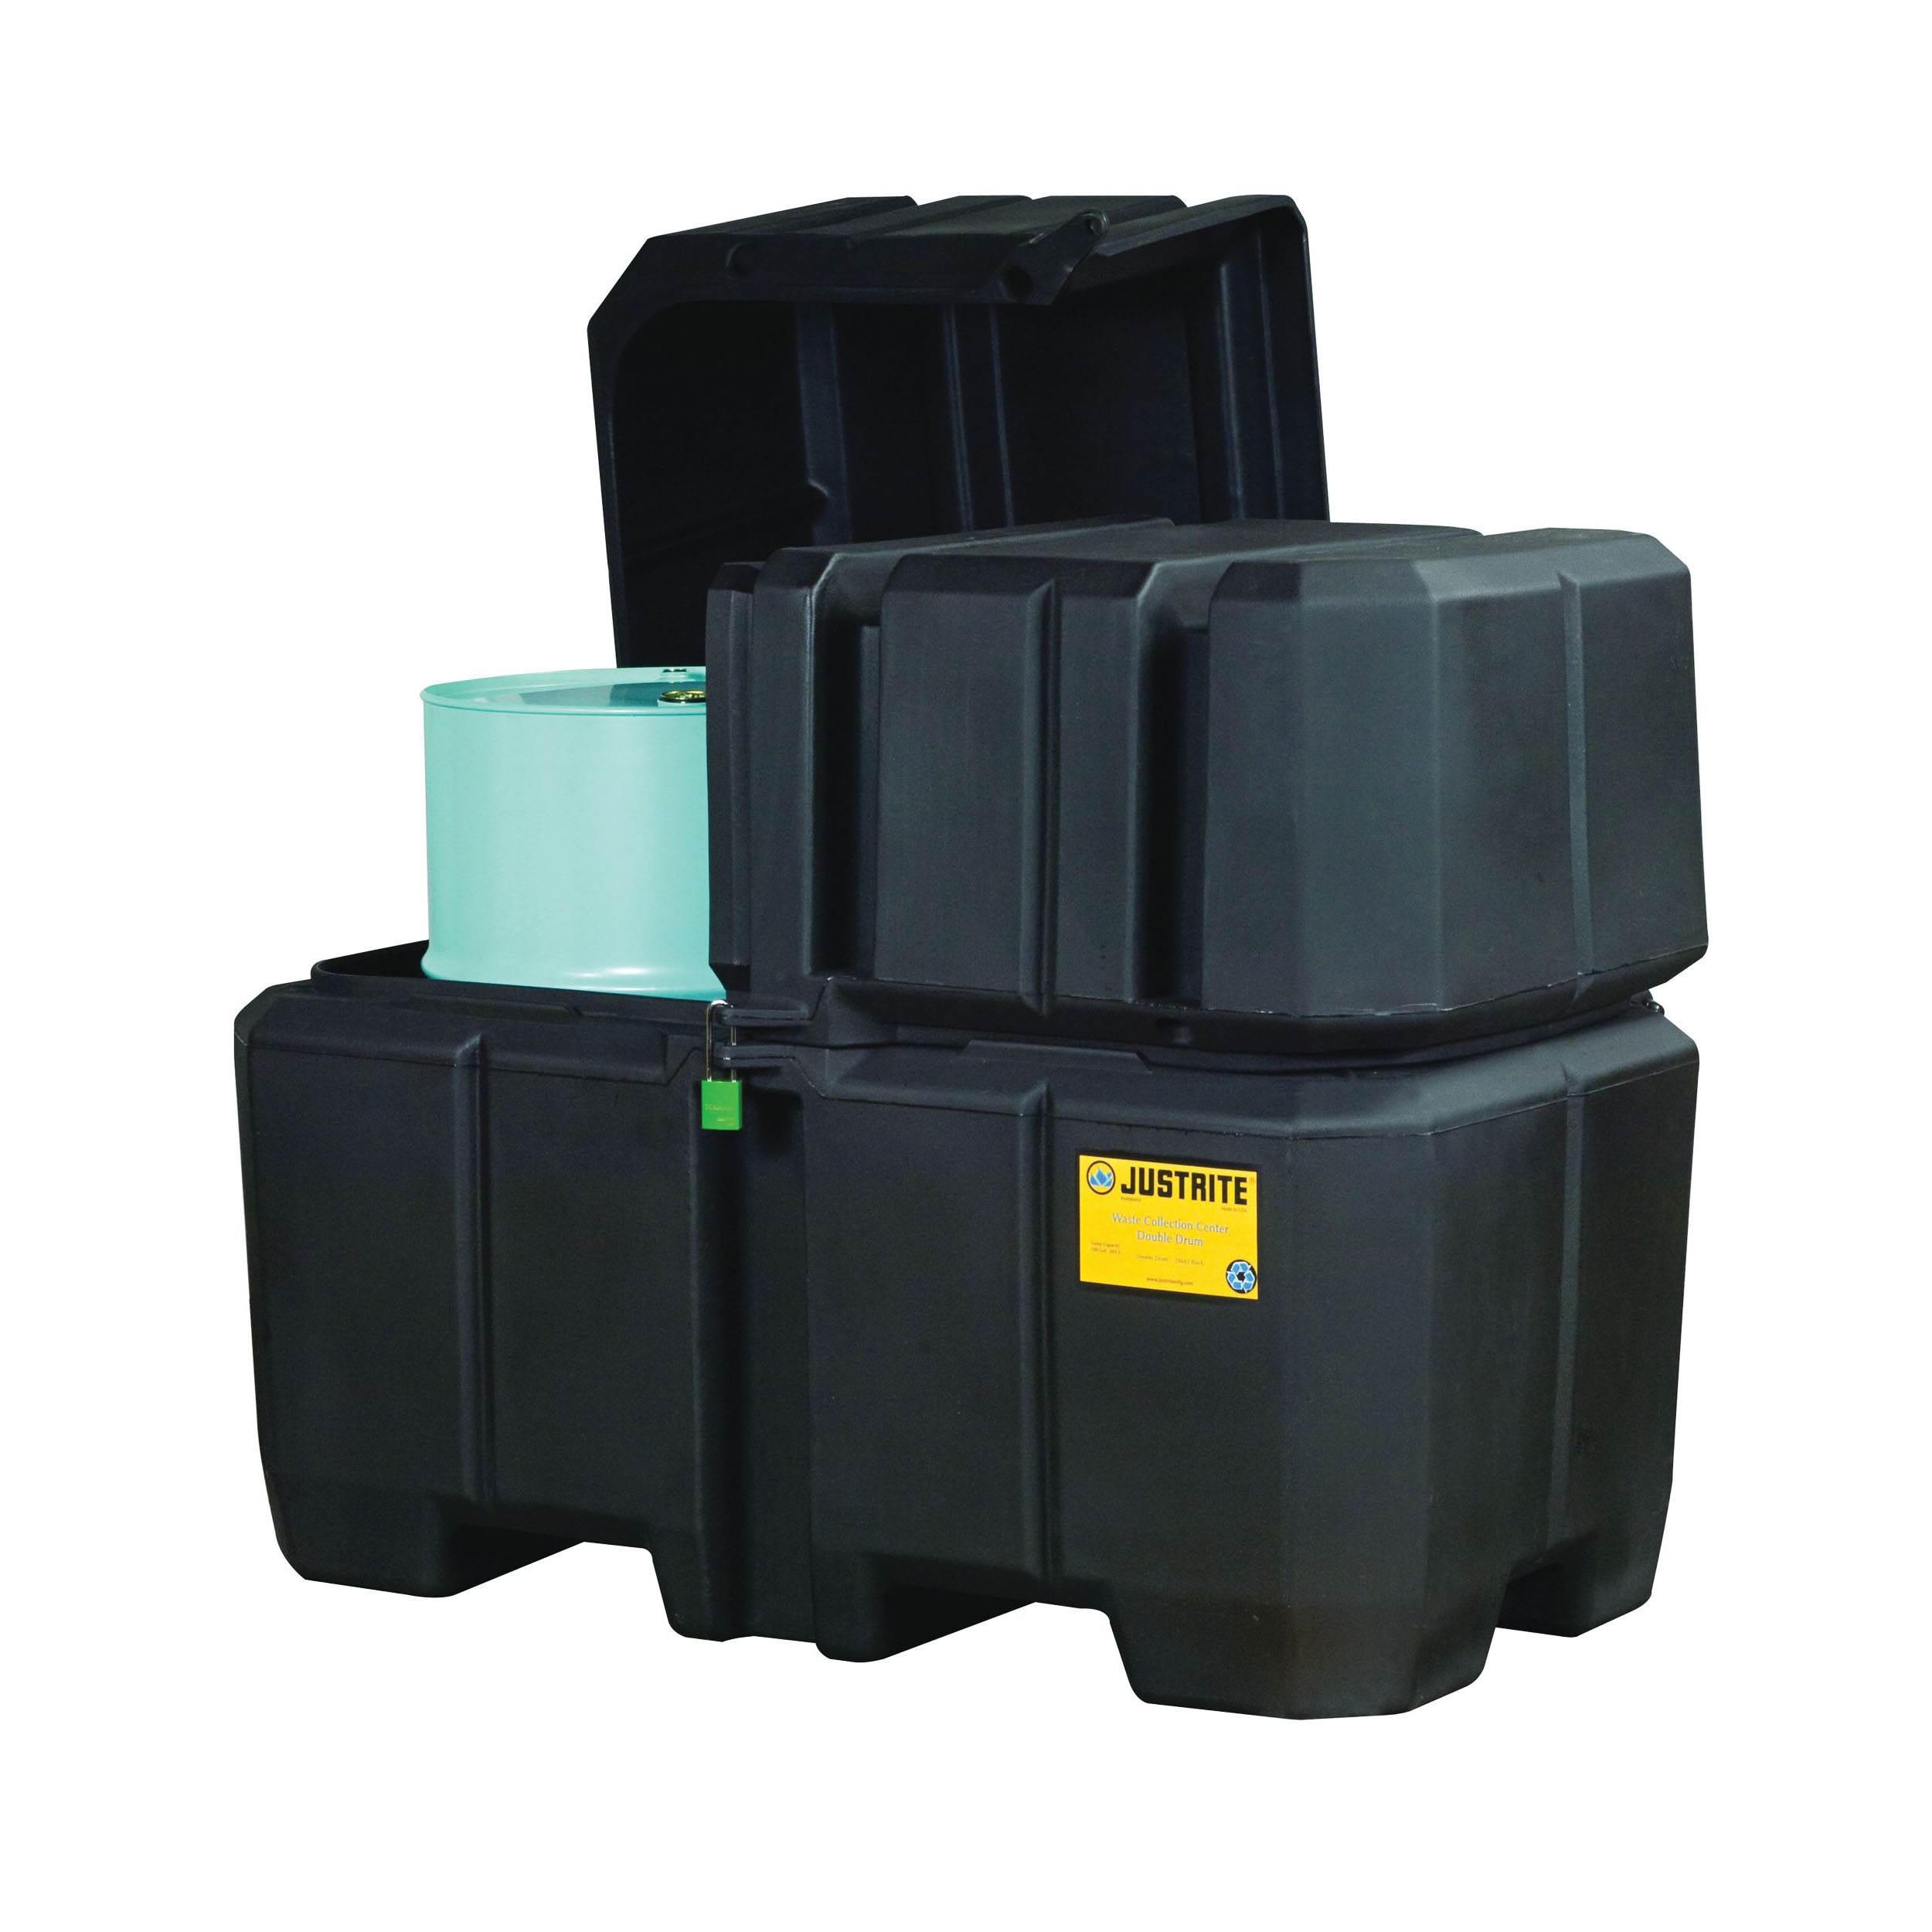 Justrite® 28683 EcoPolyBlend™ Double Drum Collection Center, 2500 lb Load, 180 gal Spill, 39 in OD Dia x 47 in H, Black